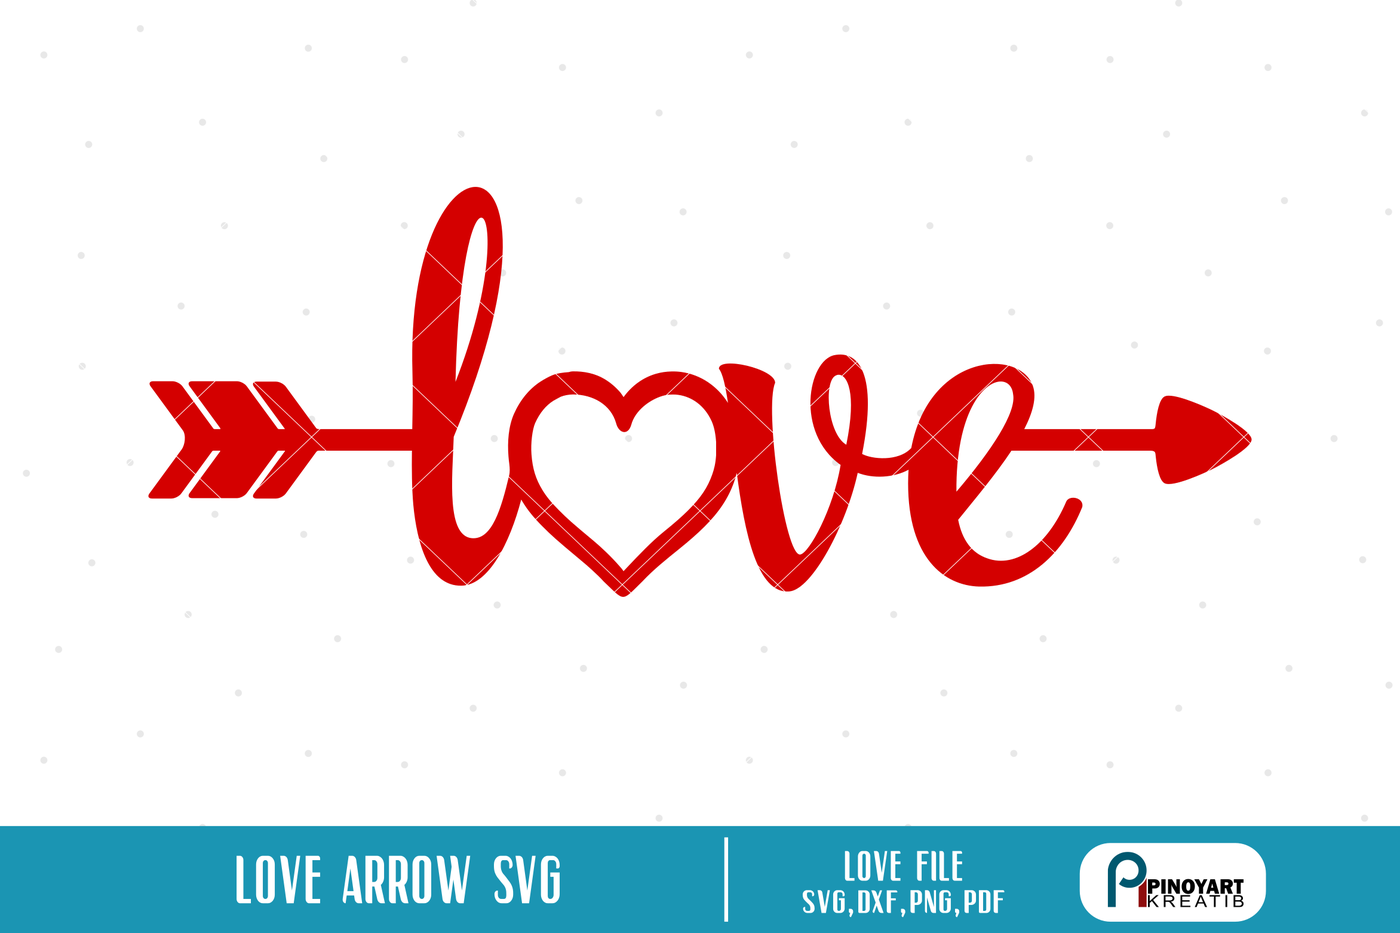 Love Arrow Svg Love Svg Arrow Svg Valentine Arrow Svg Svg